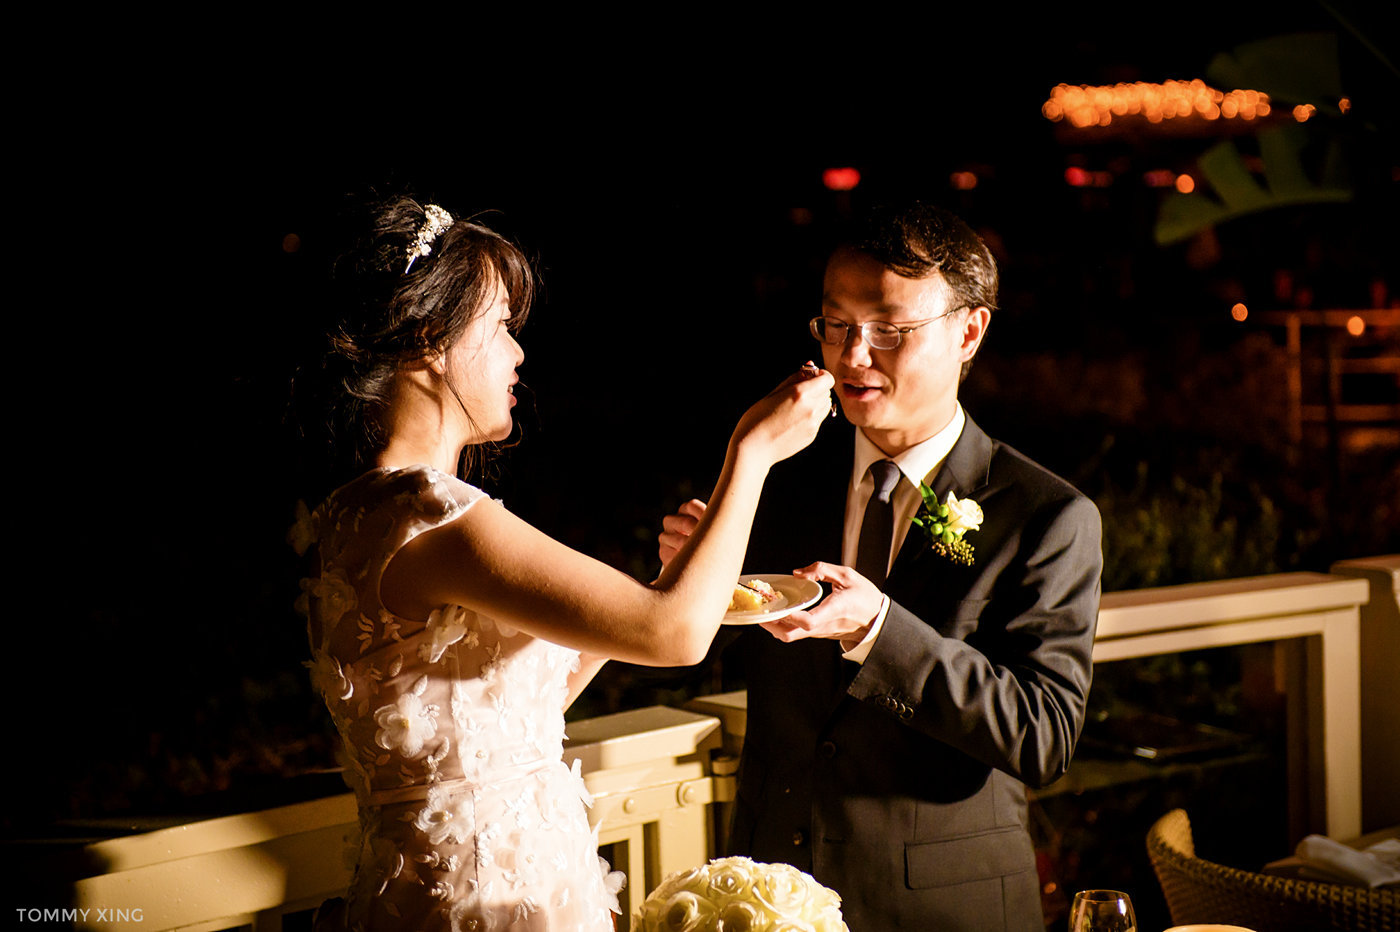 Qinglu Meng & Daozheng Chen Wedding Slideshow-226-E.JPG